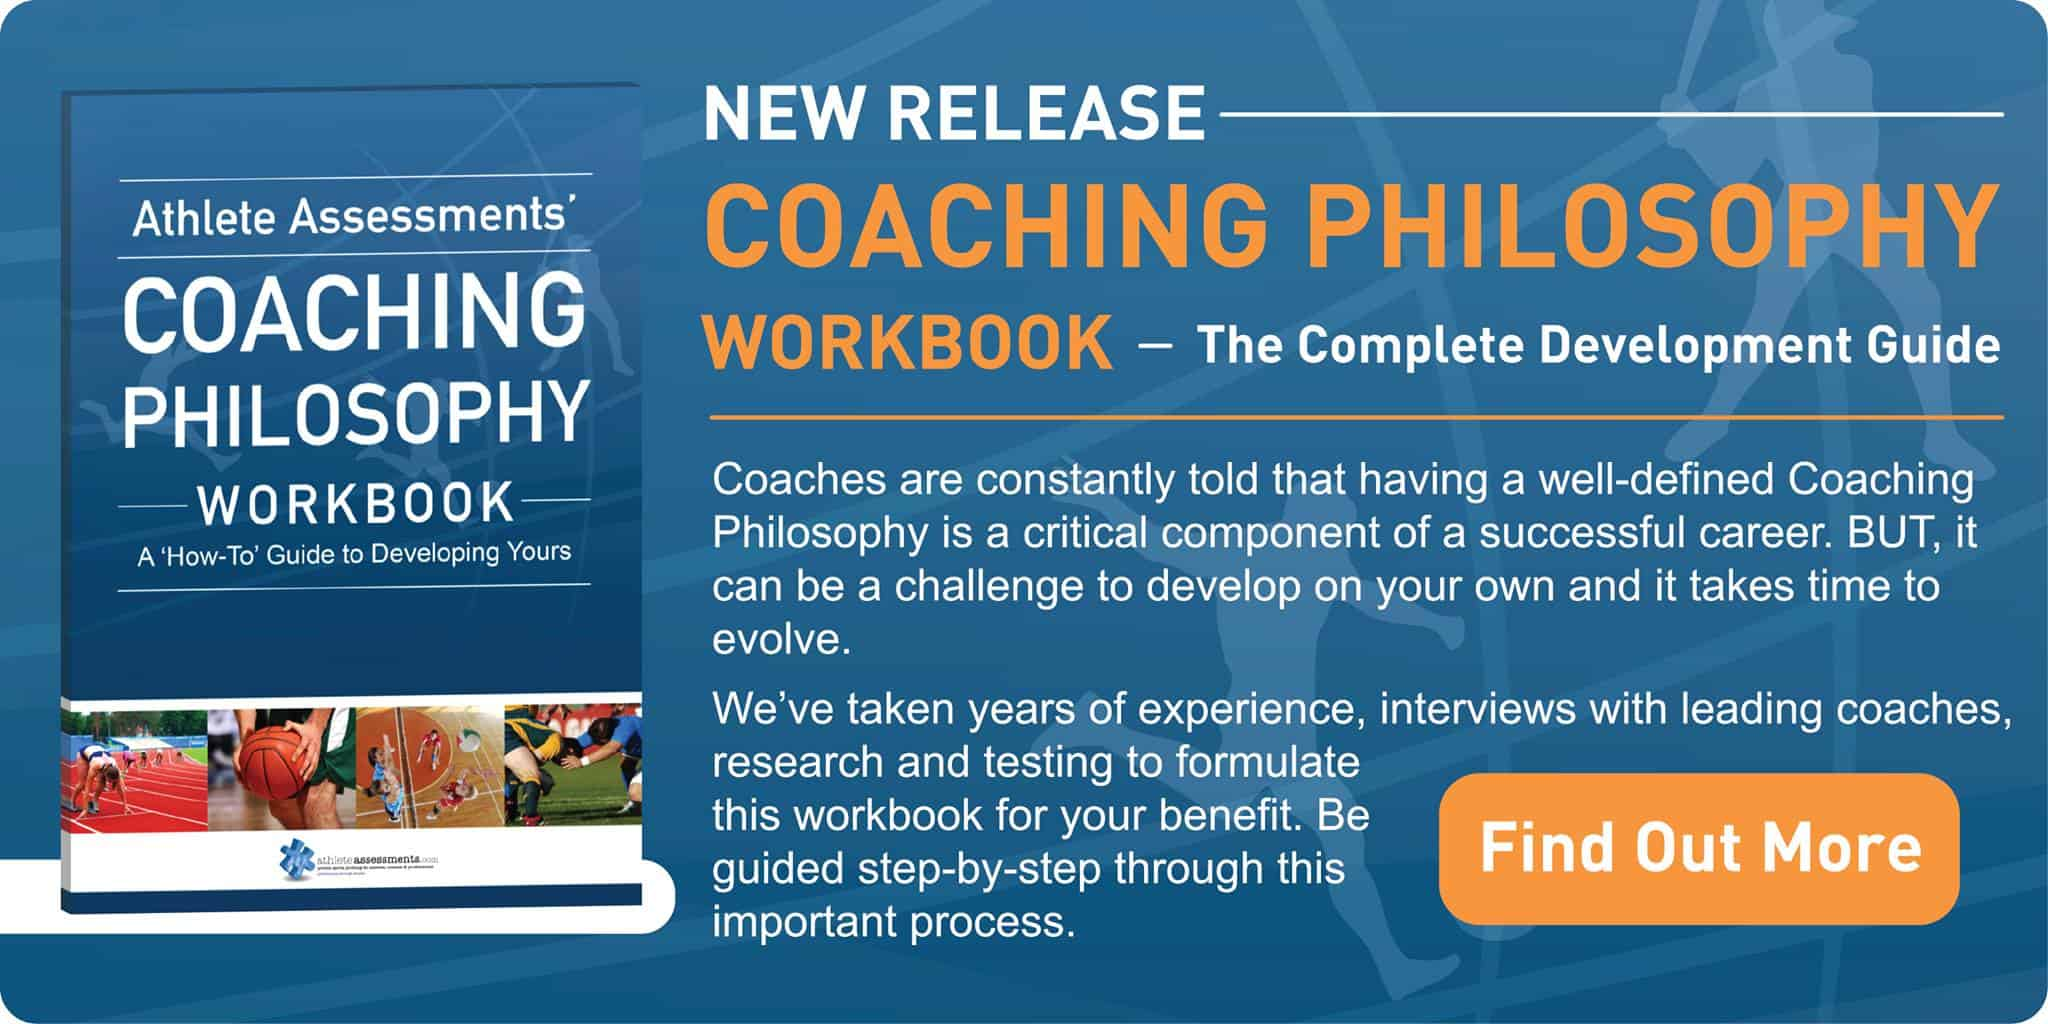 sport coaching articles and video resources 12736982 10153389965996966 987240425 o